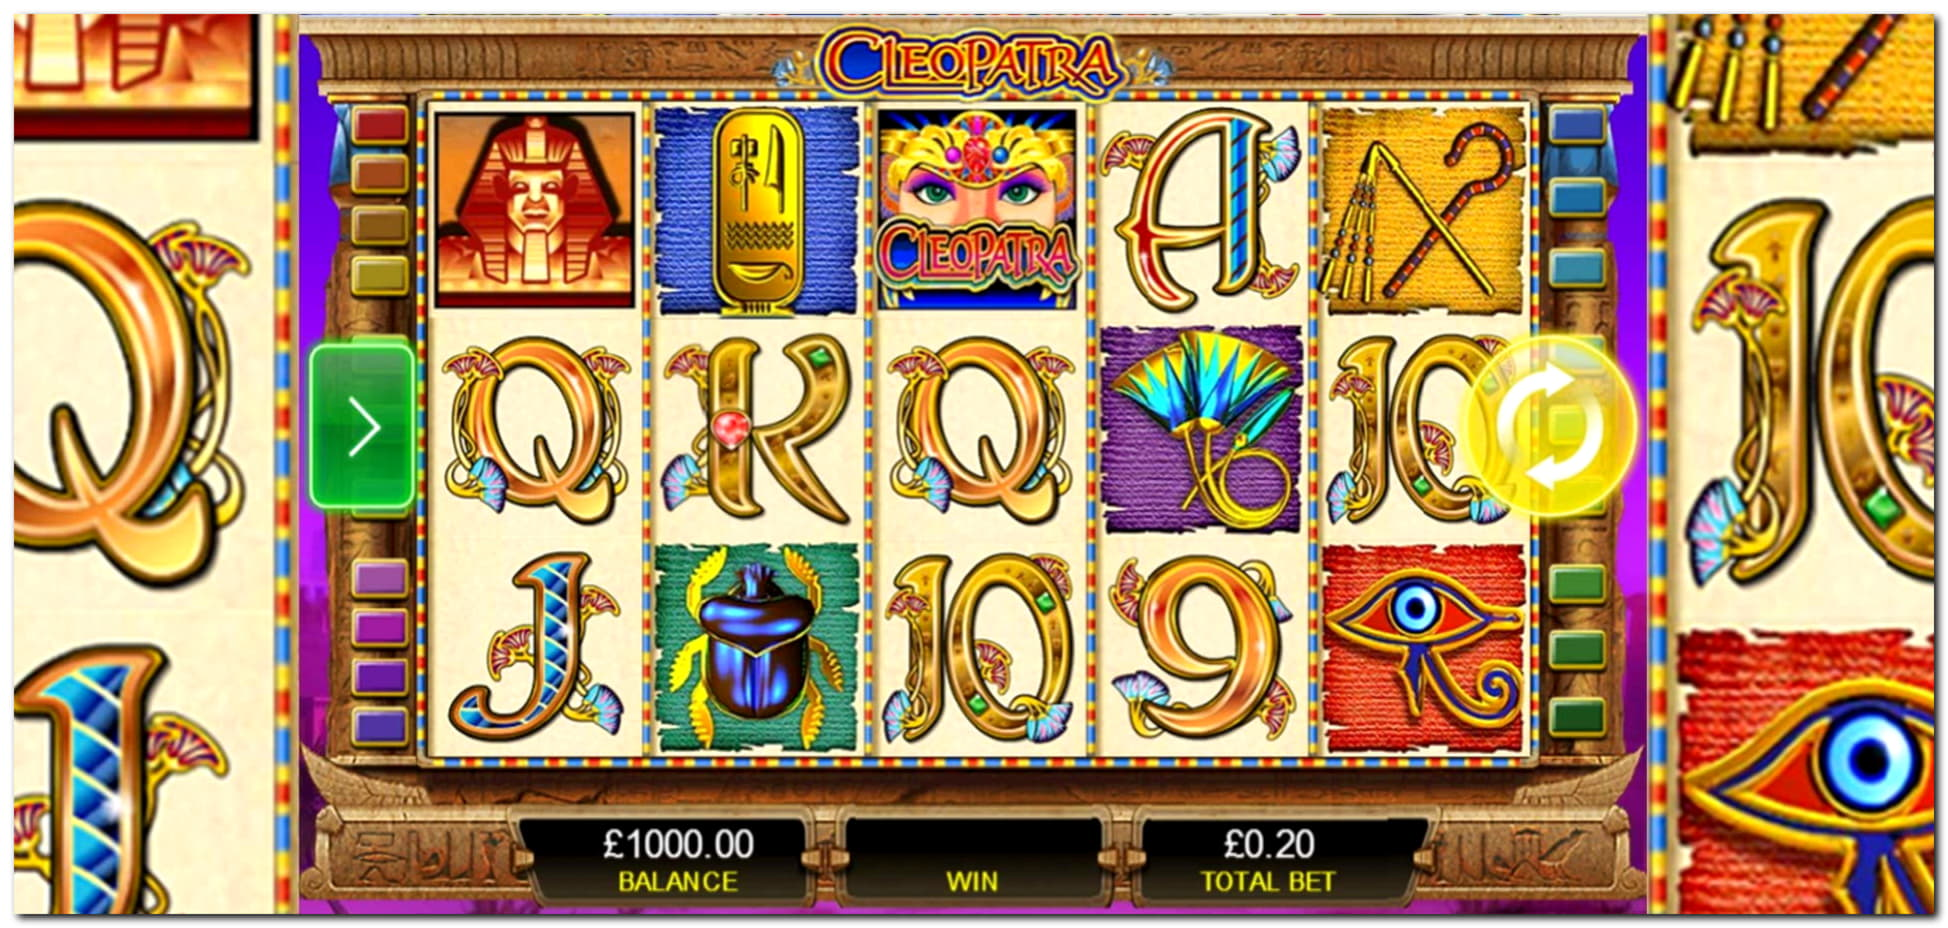 Eur 420 Free Chip at Video Slots Casino